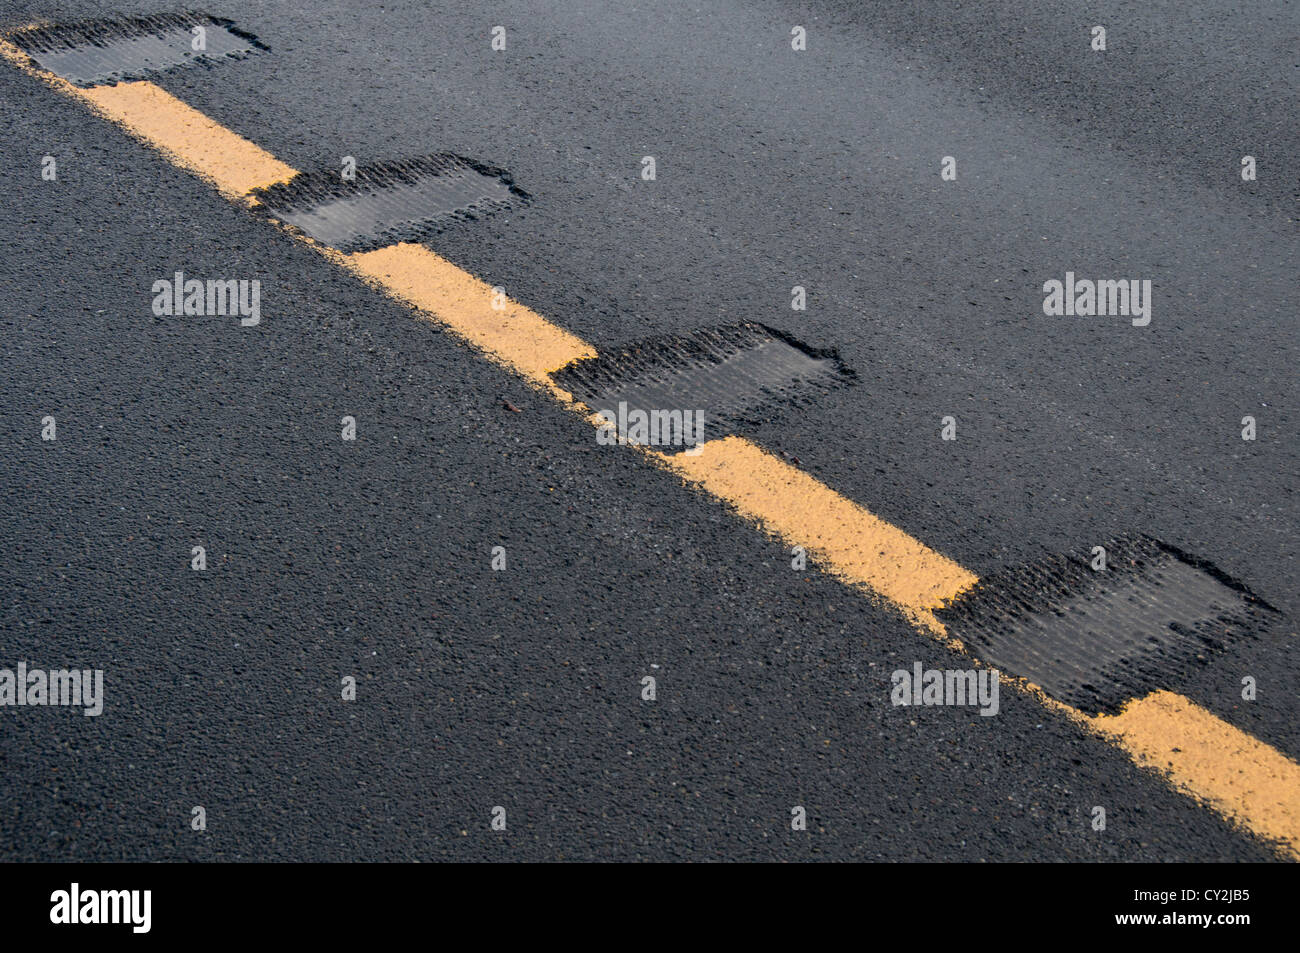 Rumble strips in newly paved road. Stock Photo